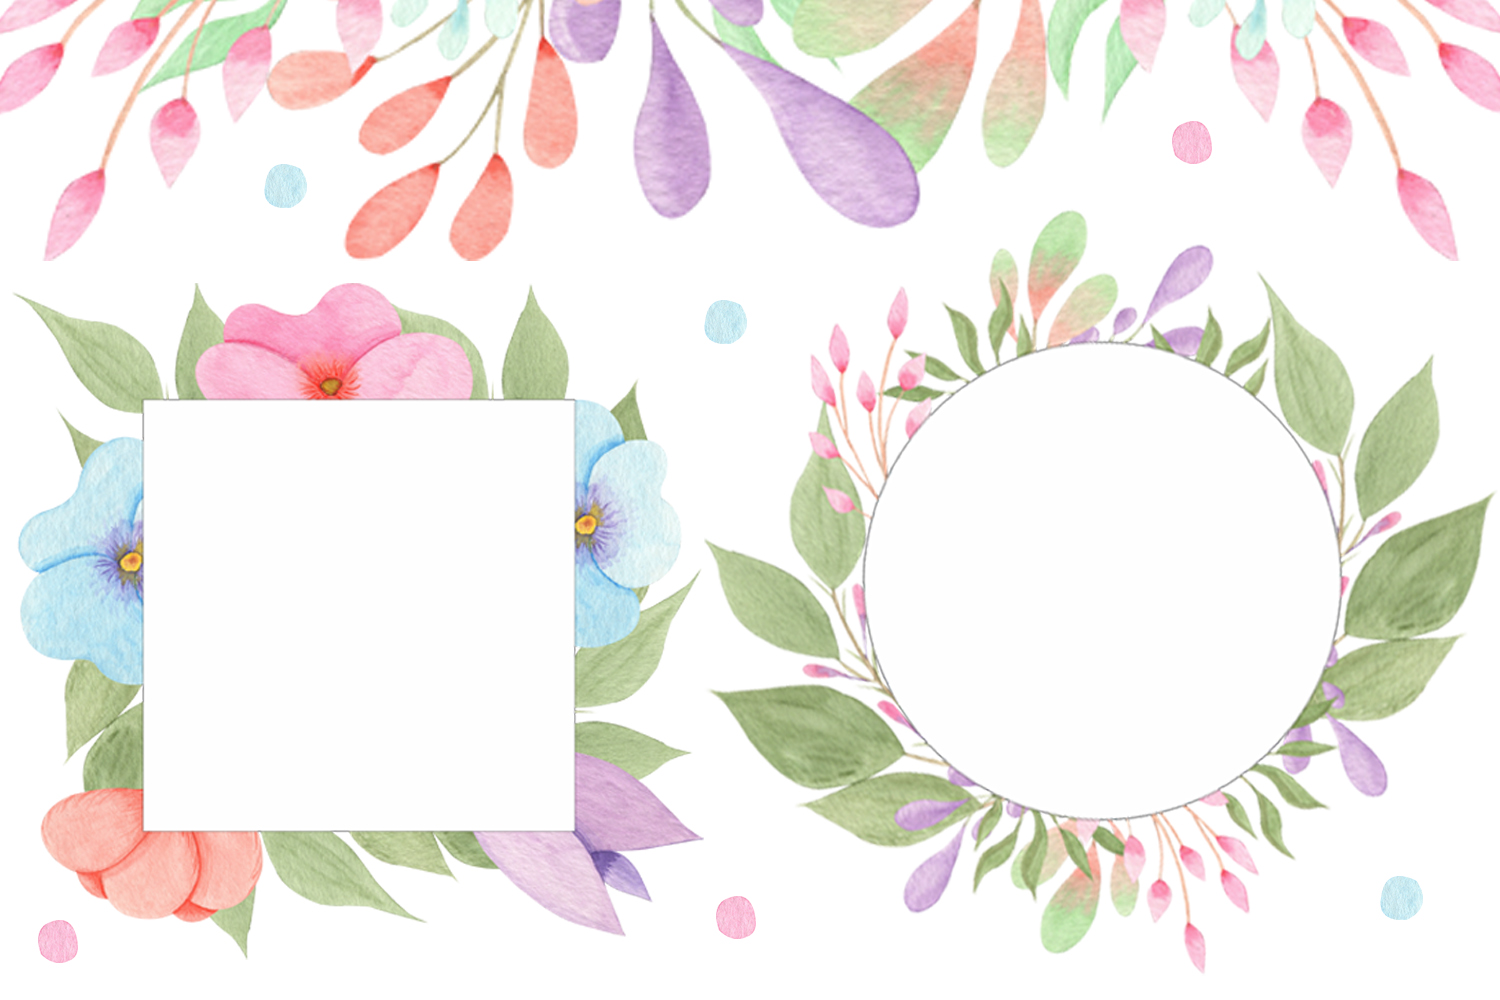 Watercolor Flowers and Leaves example image 3